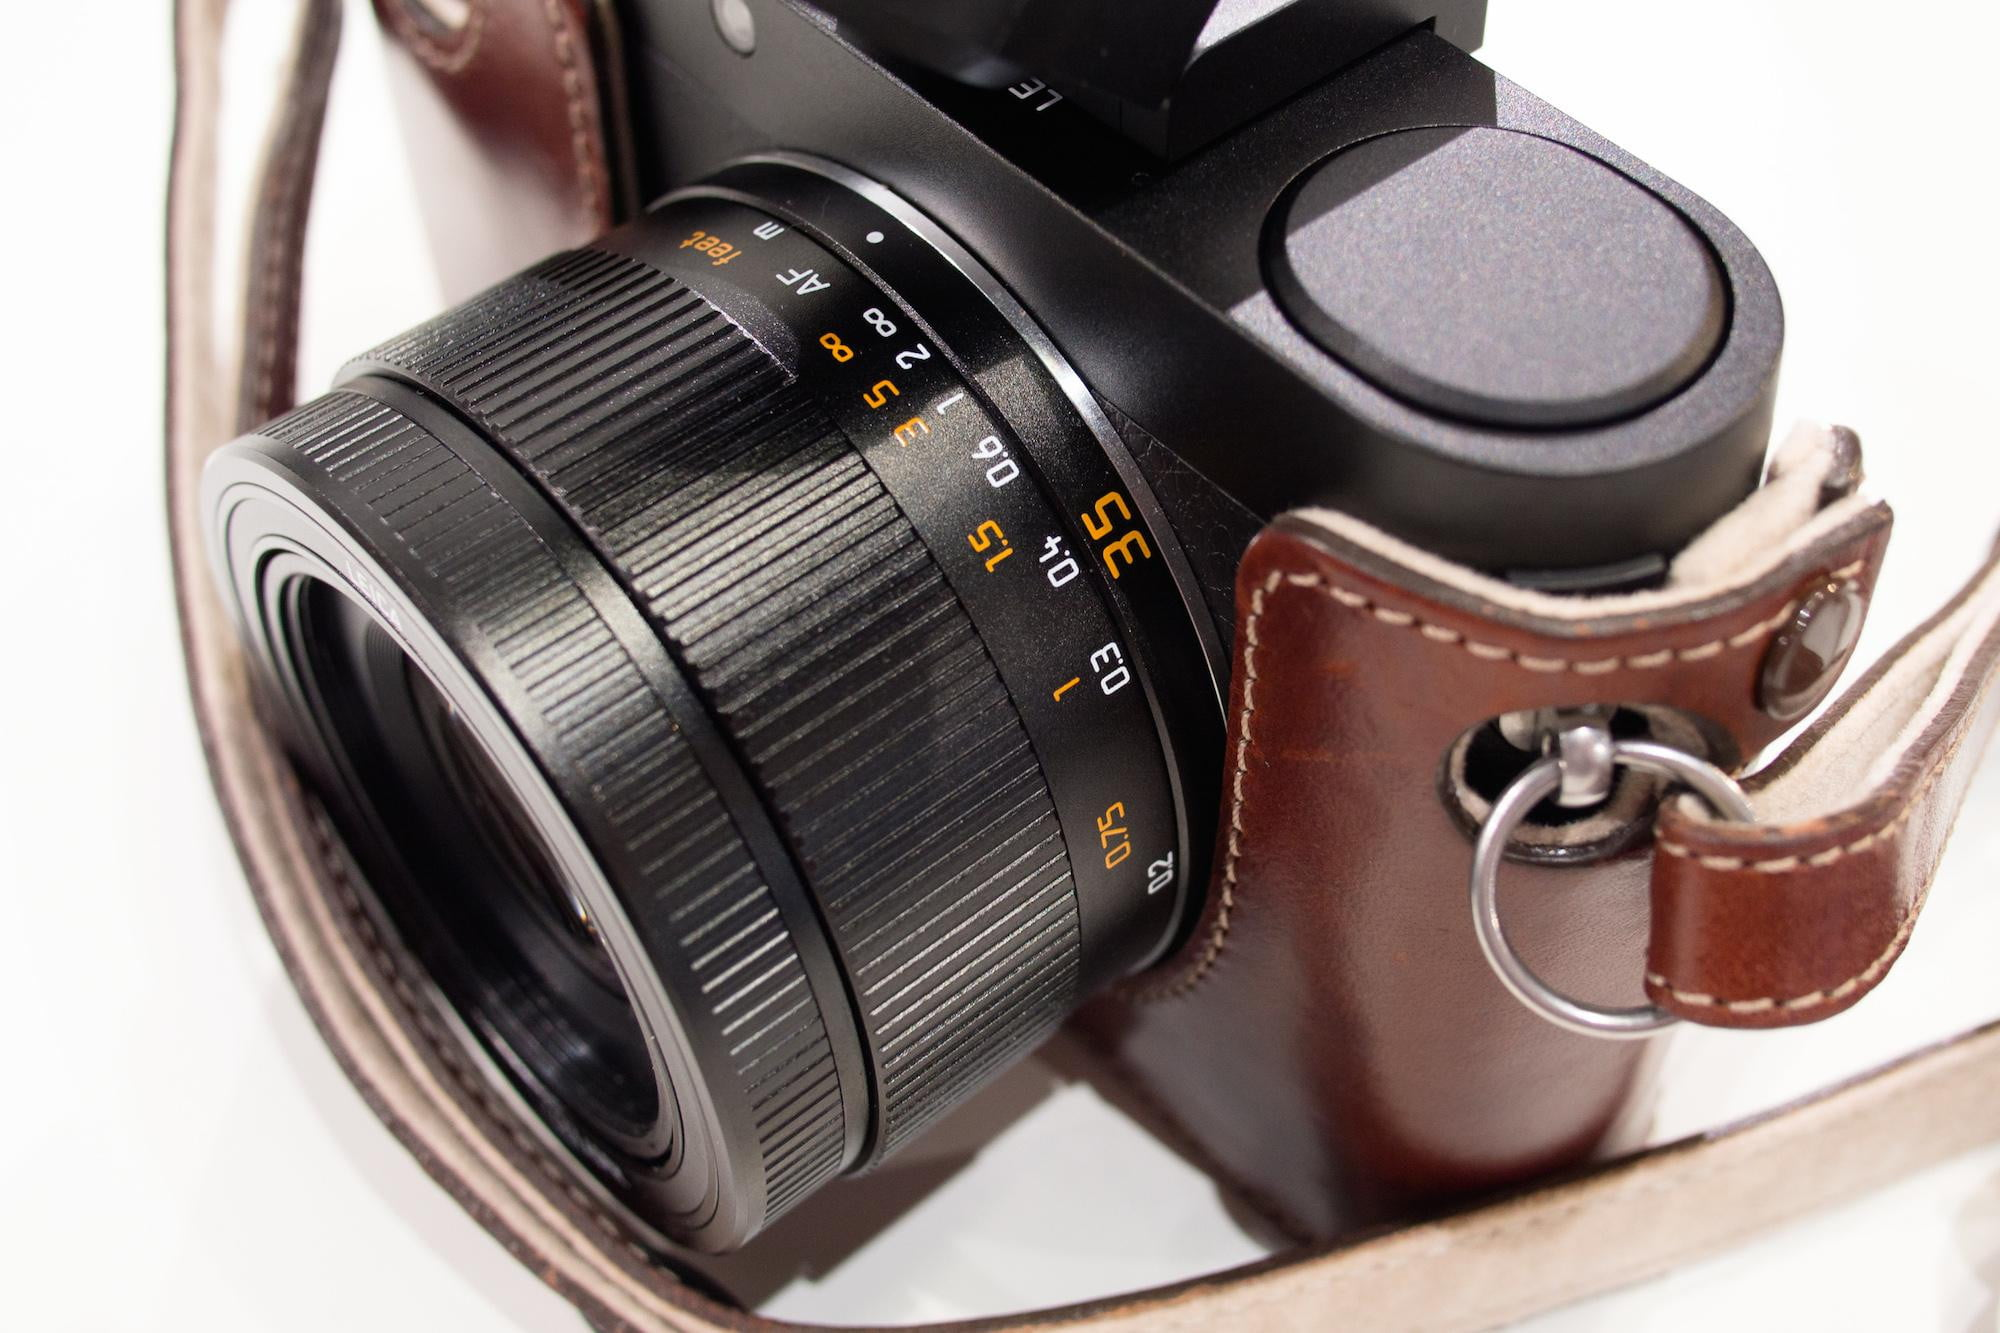 The 23mm f/1.7 Summilux-lens sports a manual focusing ring with distance  scale